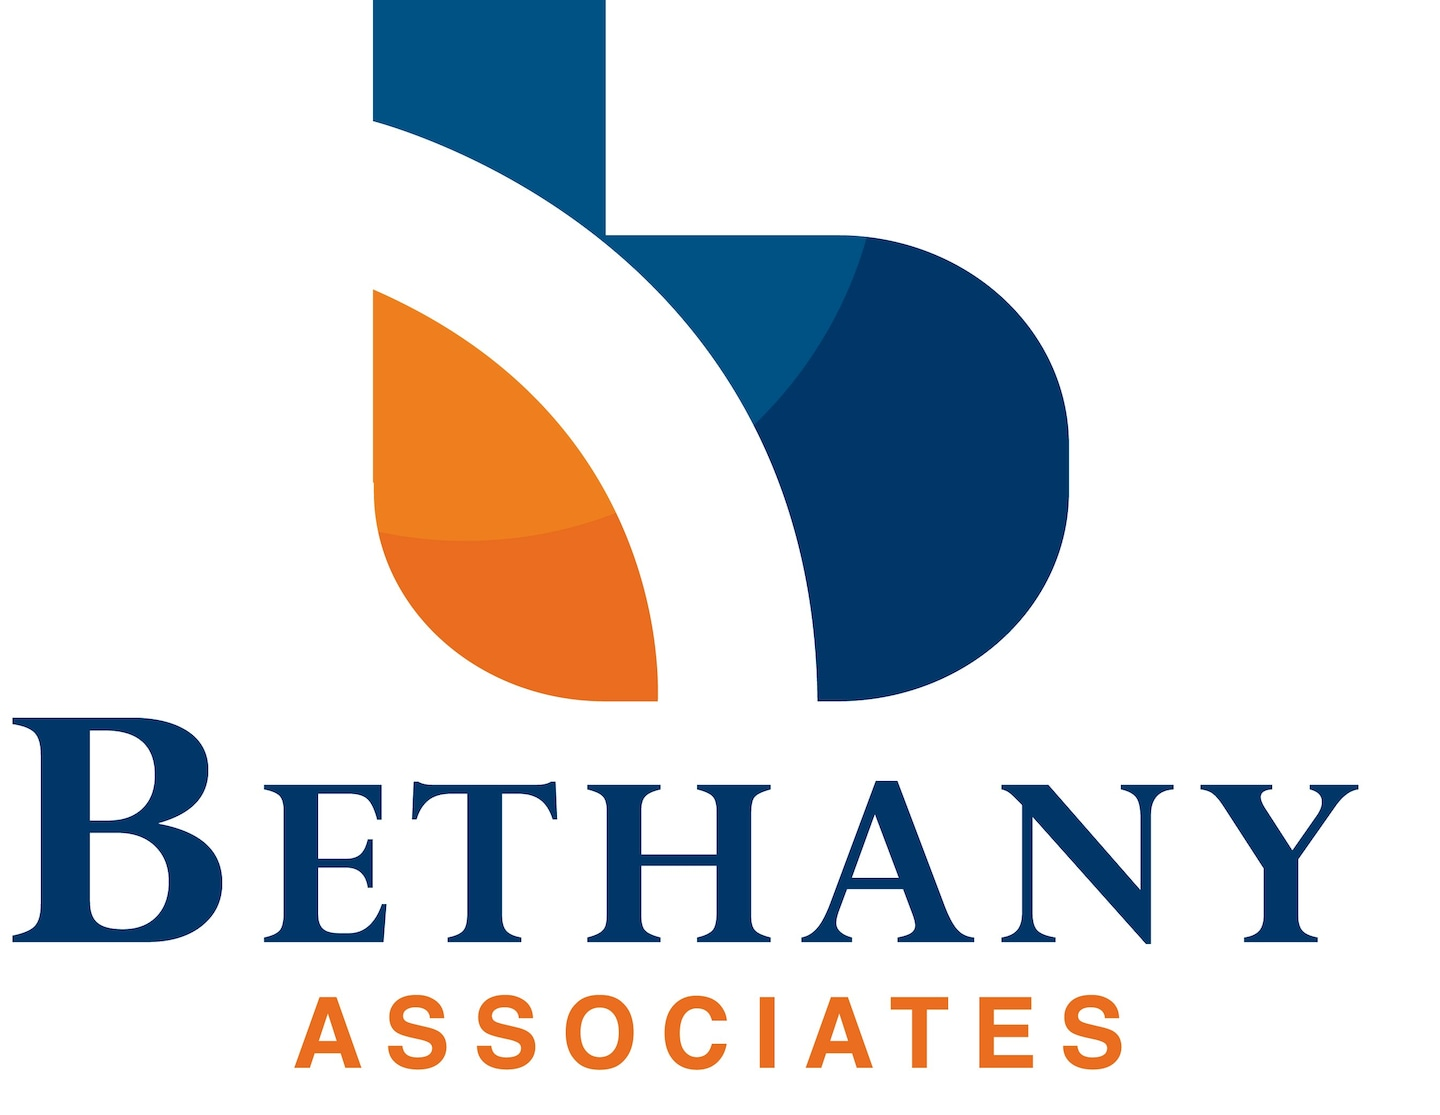 Bethany Associates Pressure Washing & Window Cleaning